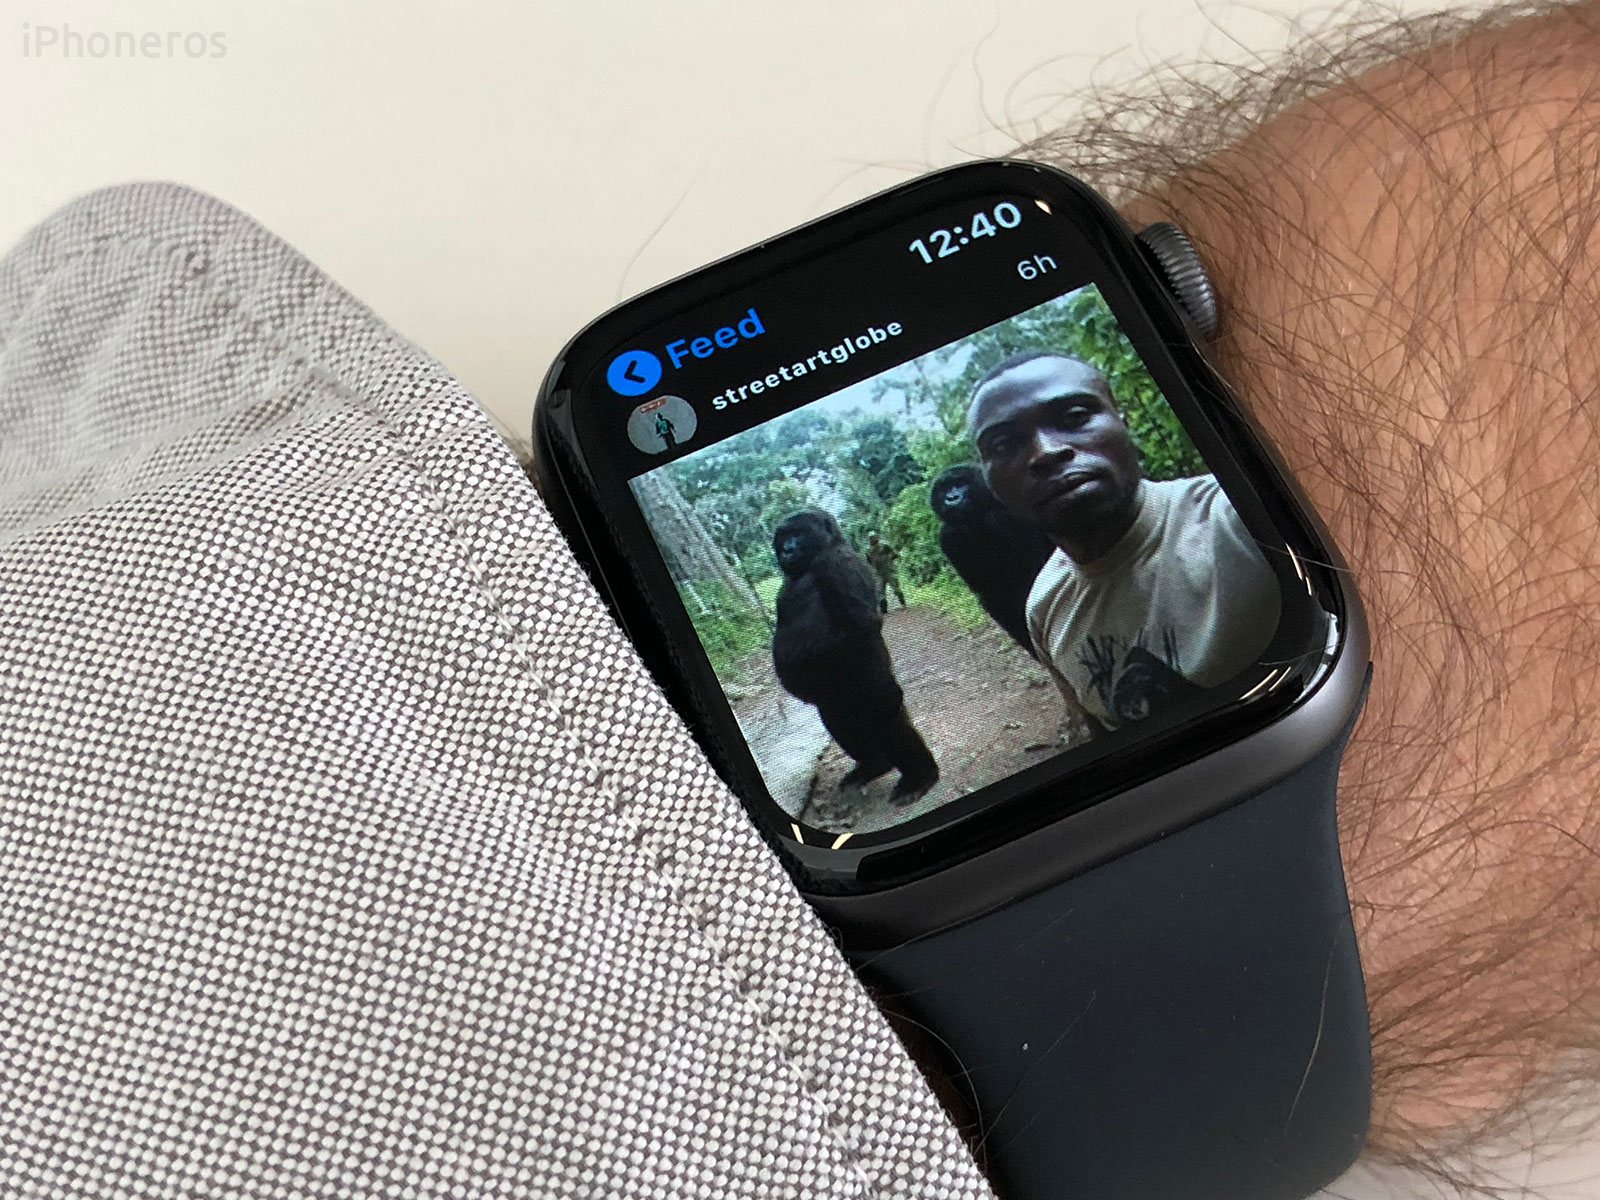 Cómo usar Instagram en el Apple Watch